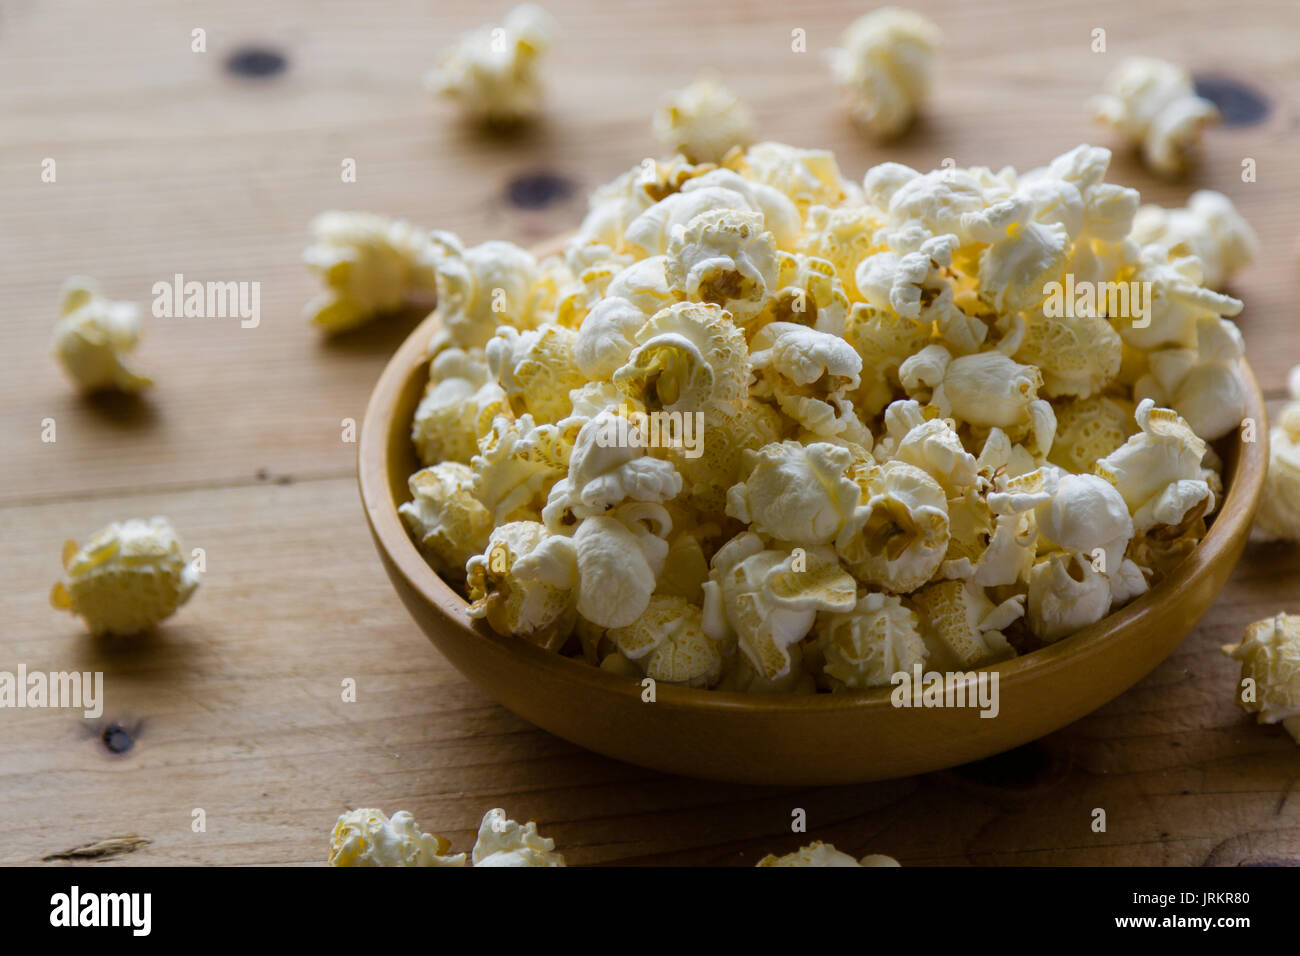 fresh salted popcorn in bowl on wooden table - Stock Image